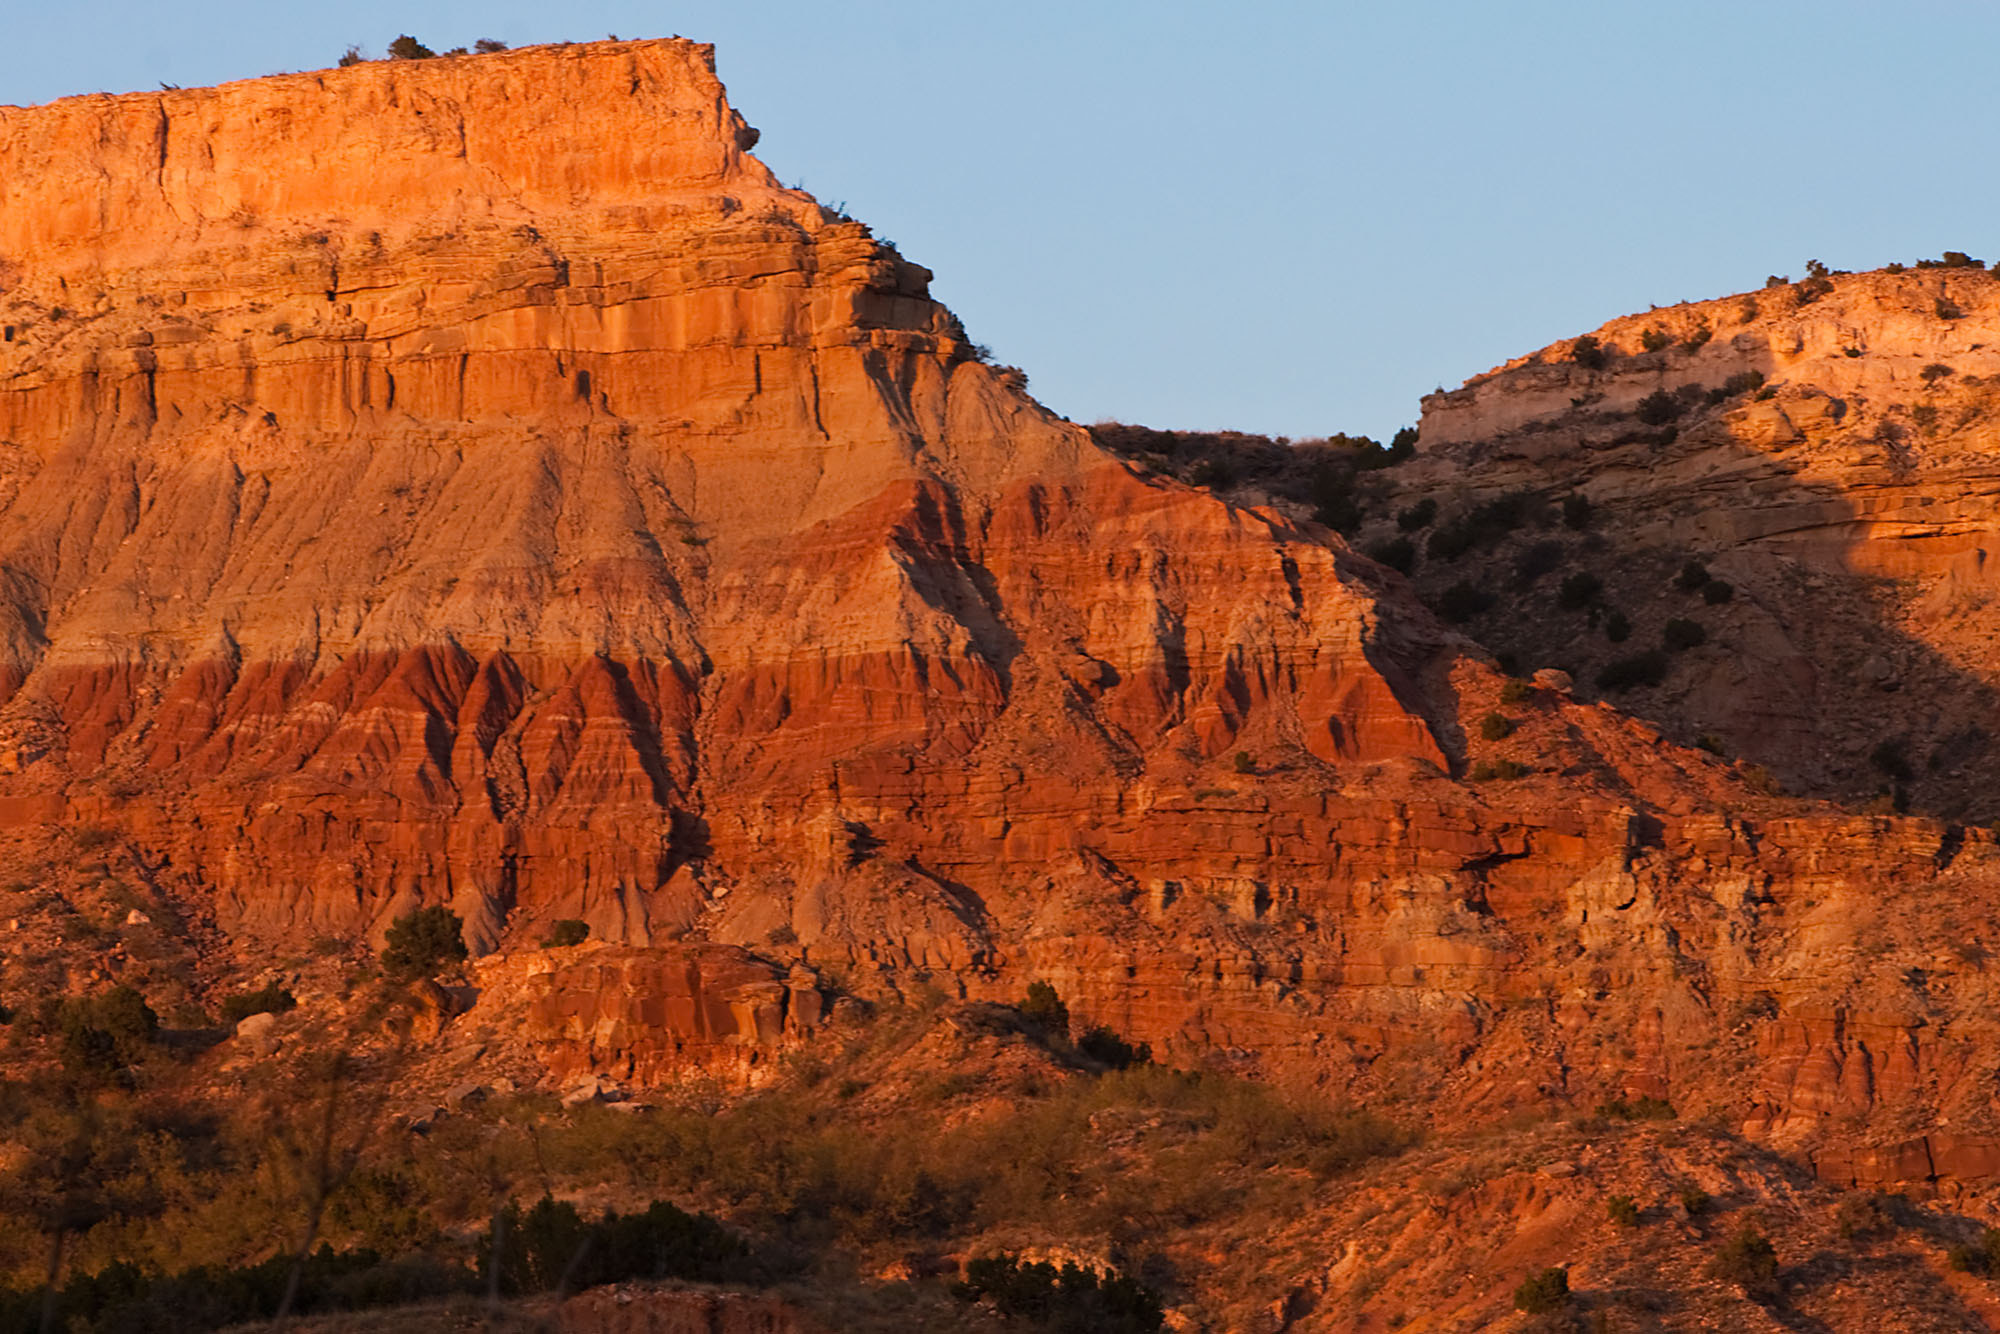 Photograph Little Palo Duro by Stephen Miller on 500px